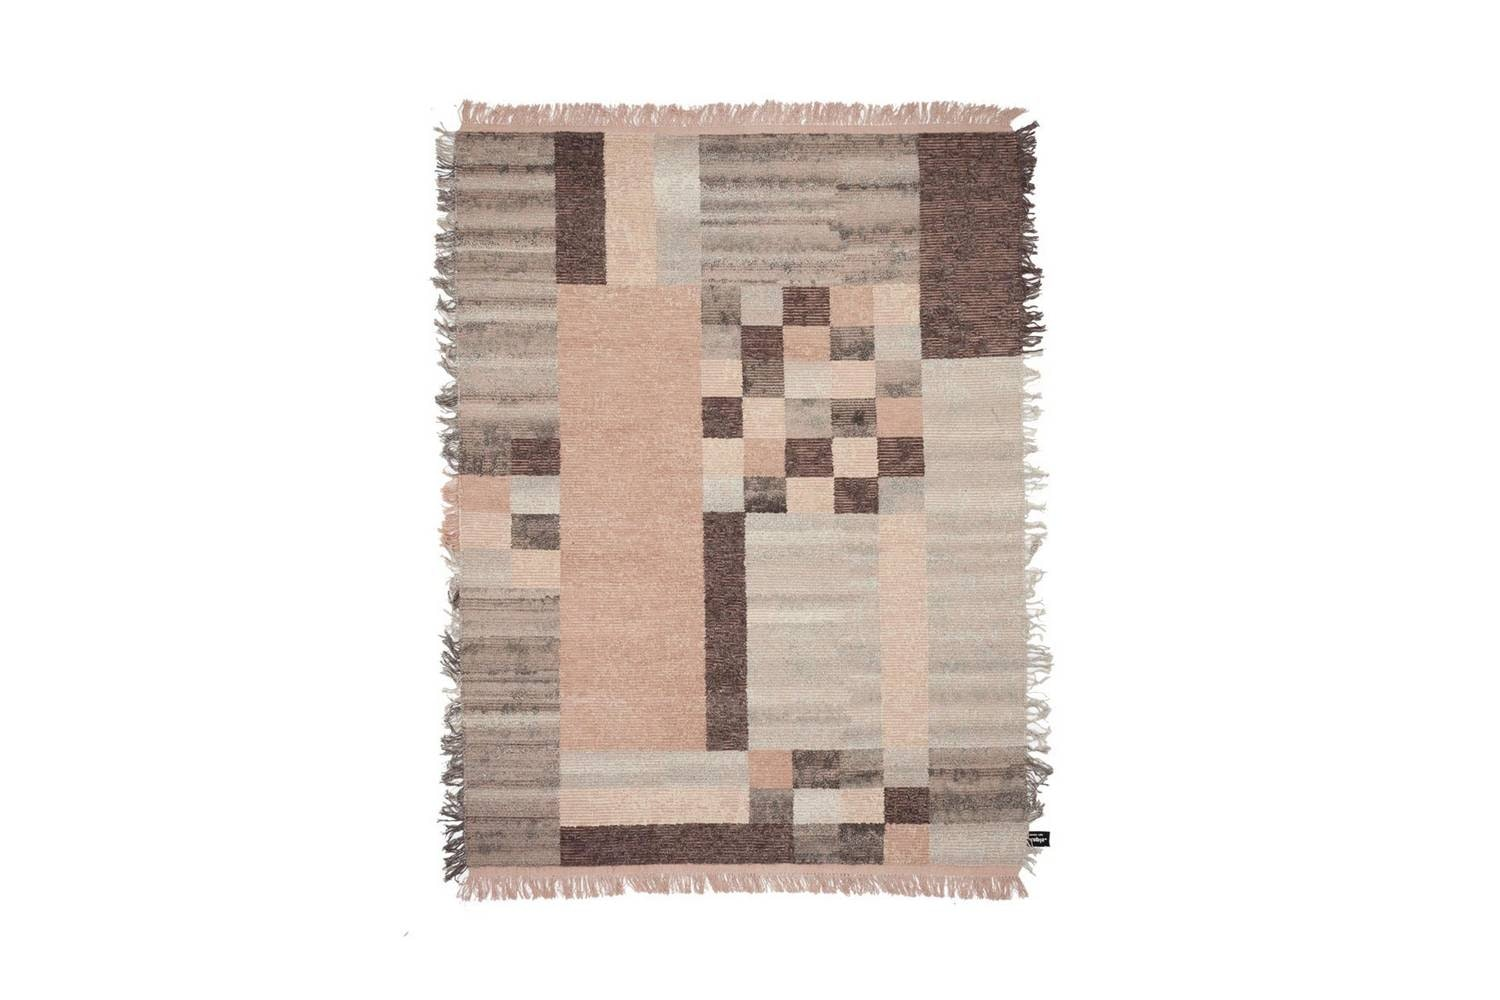 Element Cubo Rug by Oldie Collection for CC-Tapis